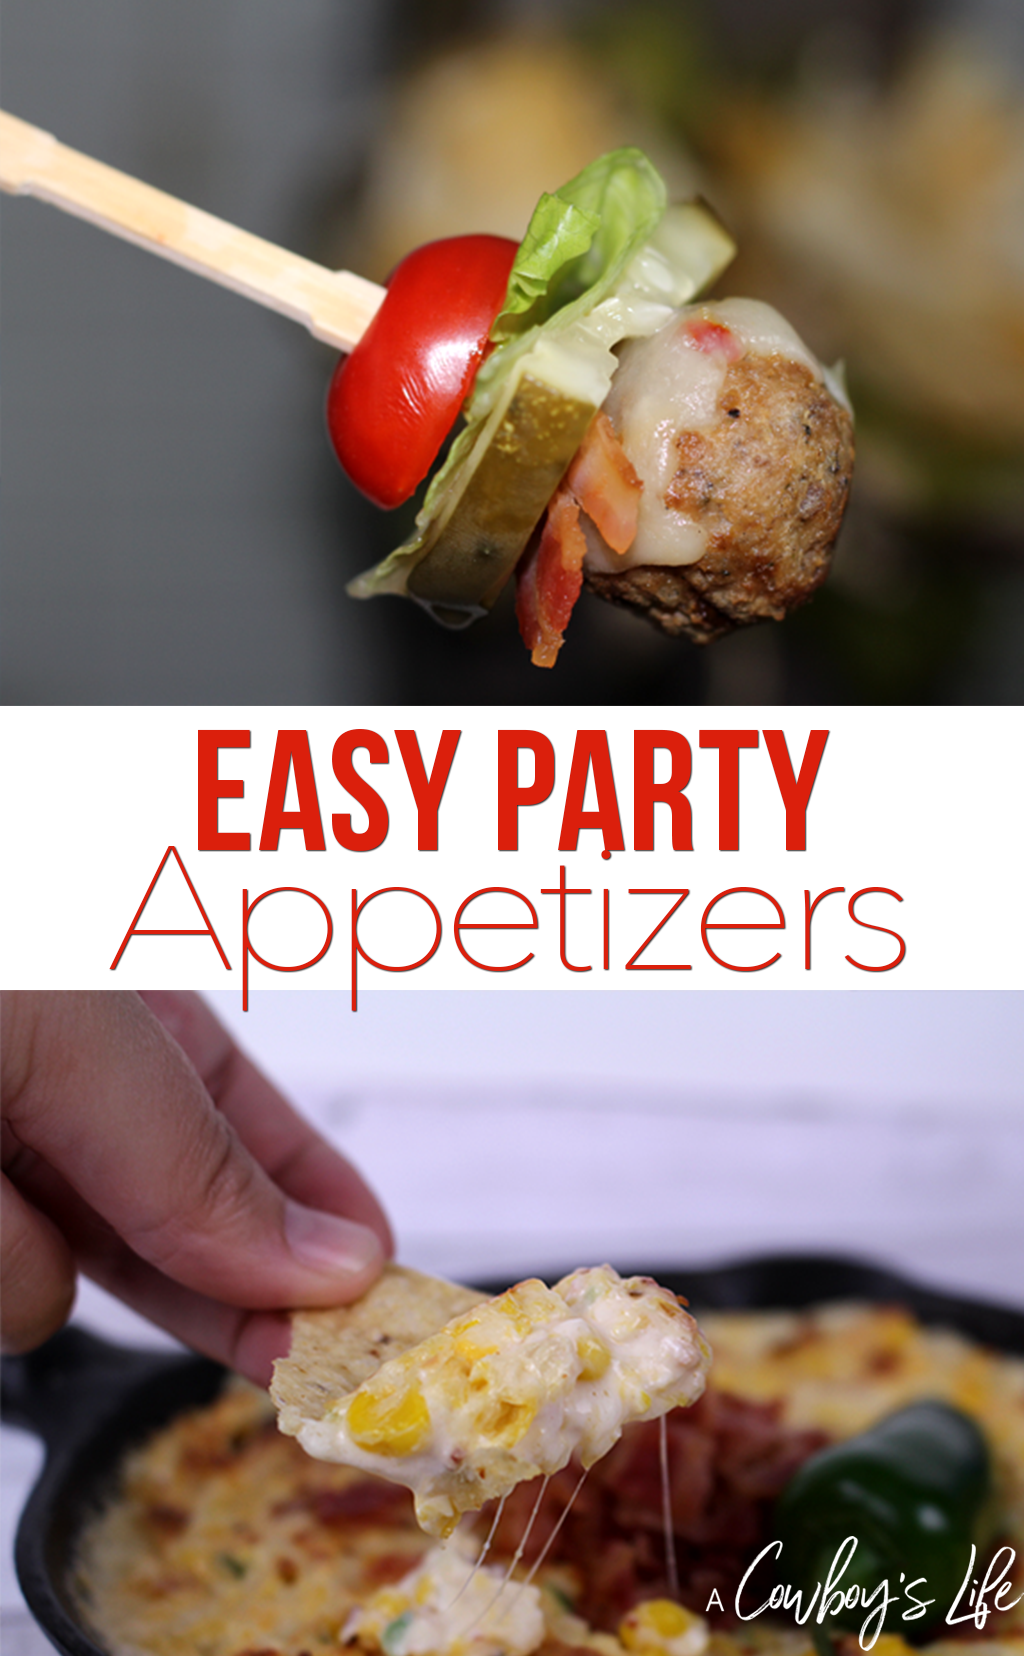 Appetizers | party food | snack food | finger foods | chips and dip | meatballs  #partyfood #entertaining #appetizer